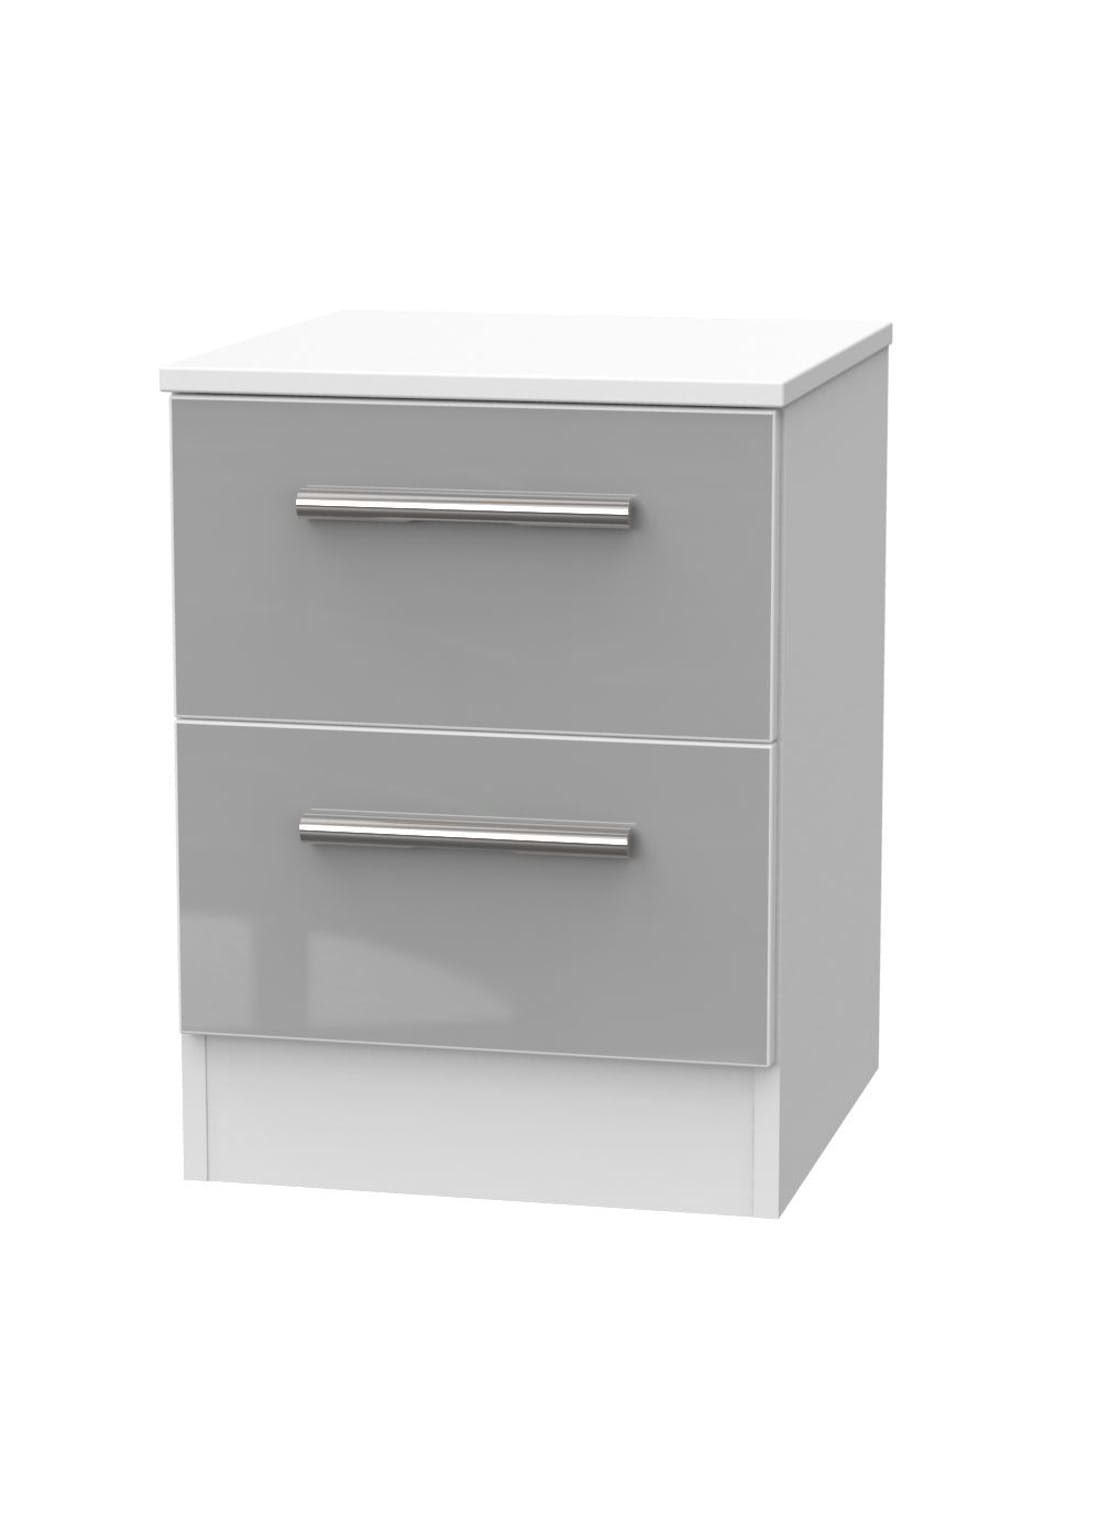 Swift Prague 2 Drawer Bedside Table (50.5cm x 39.5cm x 41.5cm)